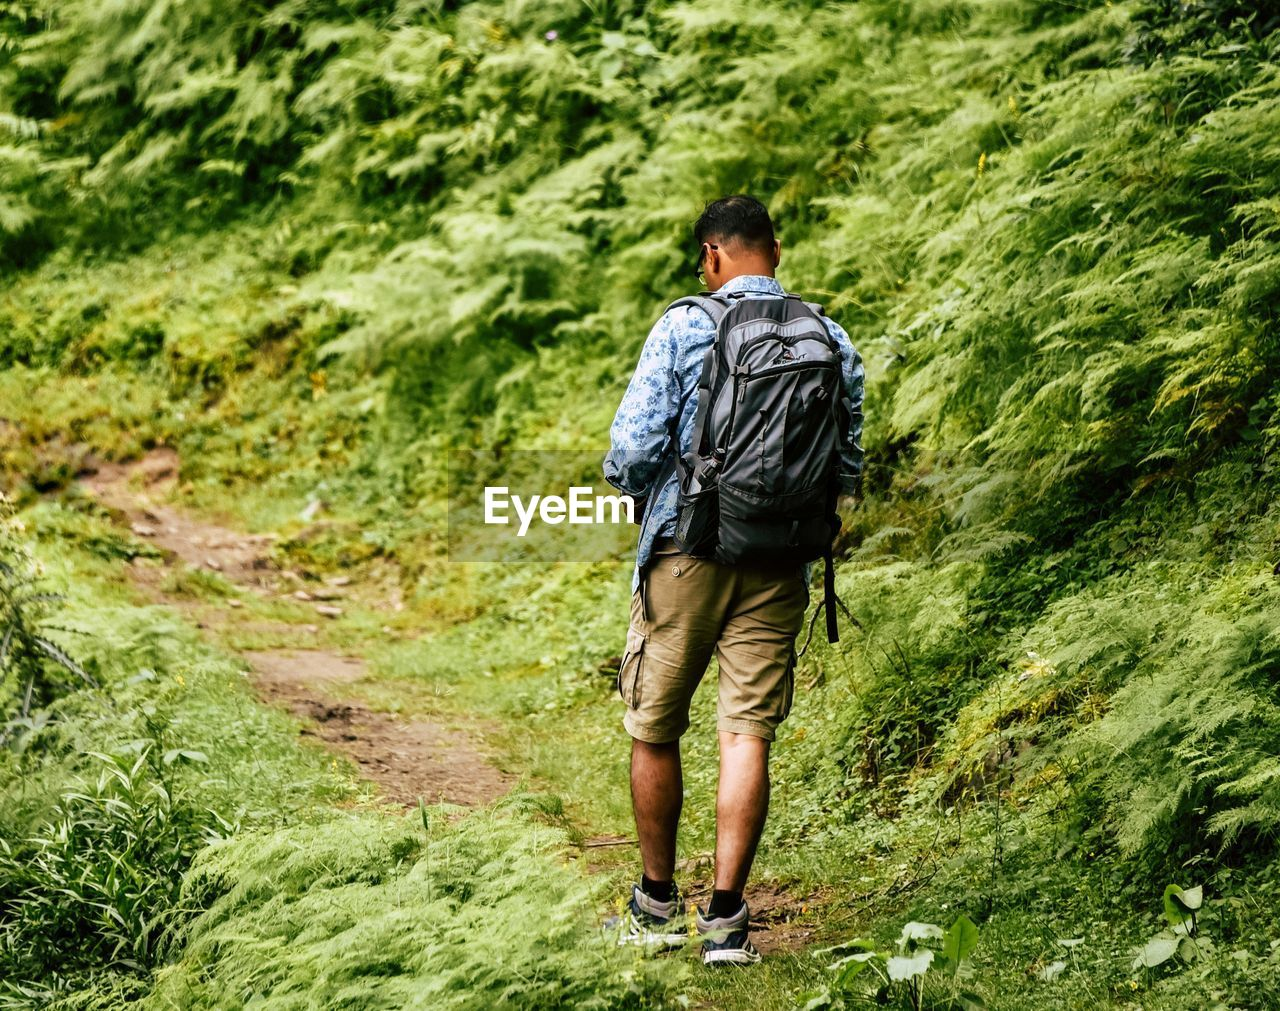 rear view, hiking, walking, backpack, adventure, full length, real people, casual clothing, forest, nature, men, day, one person, beauty in nature, outdoors, people, adult, adults only